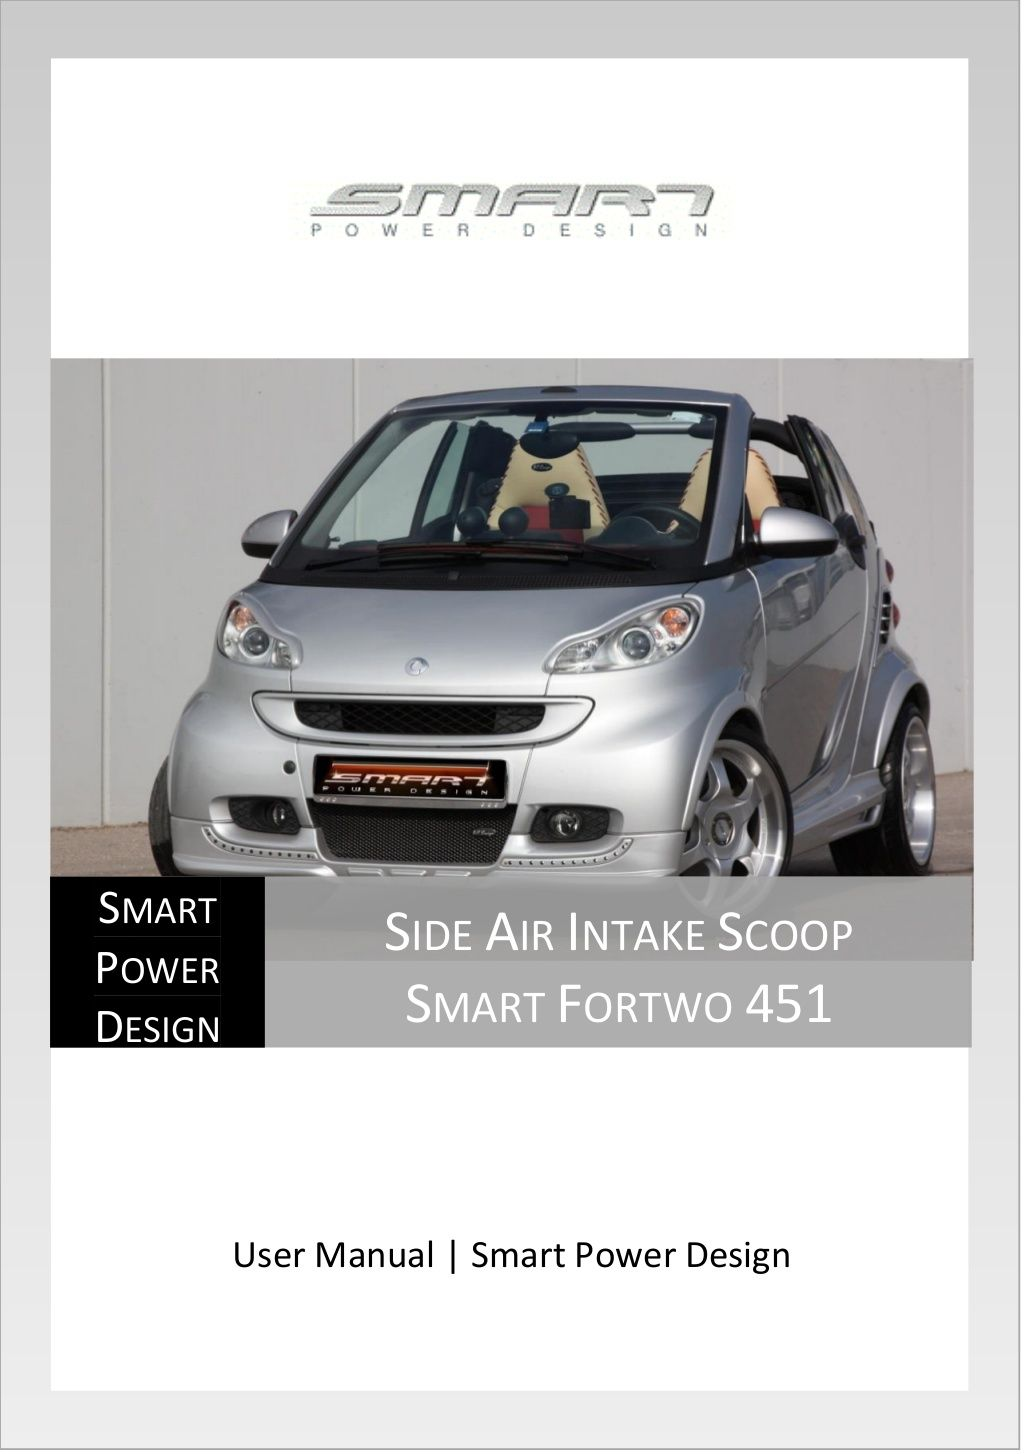 side air intake scoop smart fortwo 451 user manual by smart power rh pinterest com Smart Car Set for Jack 2009 Smart Car Owners Manual